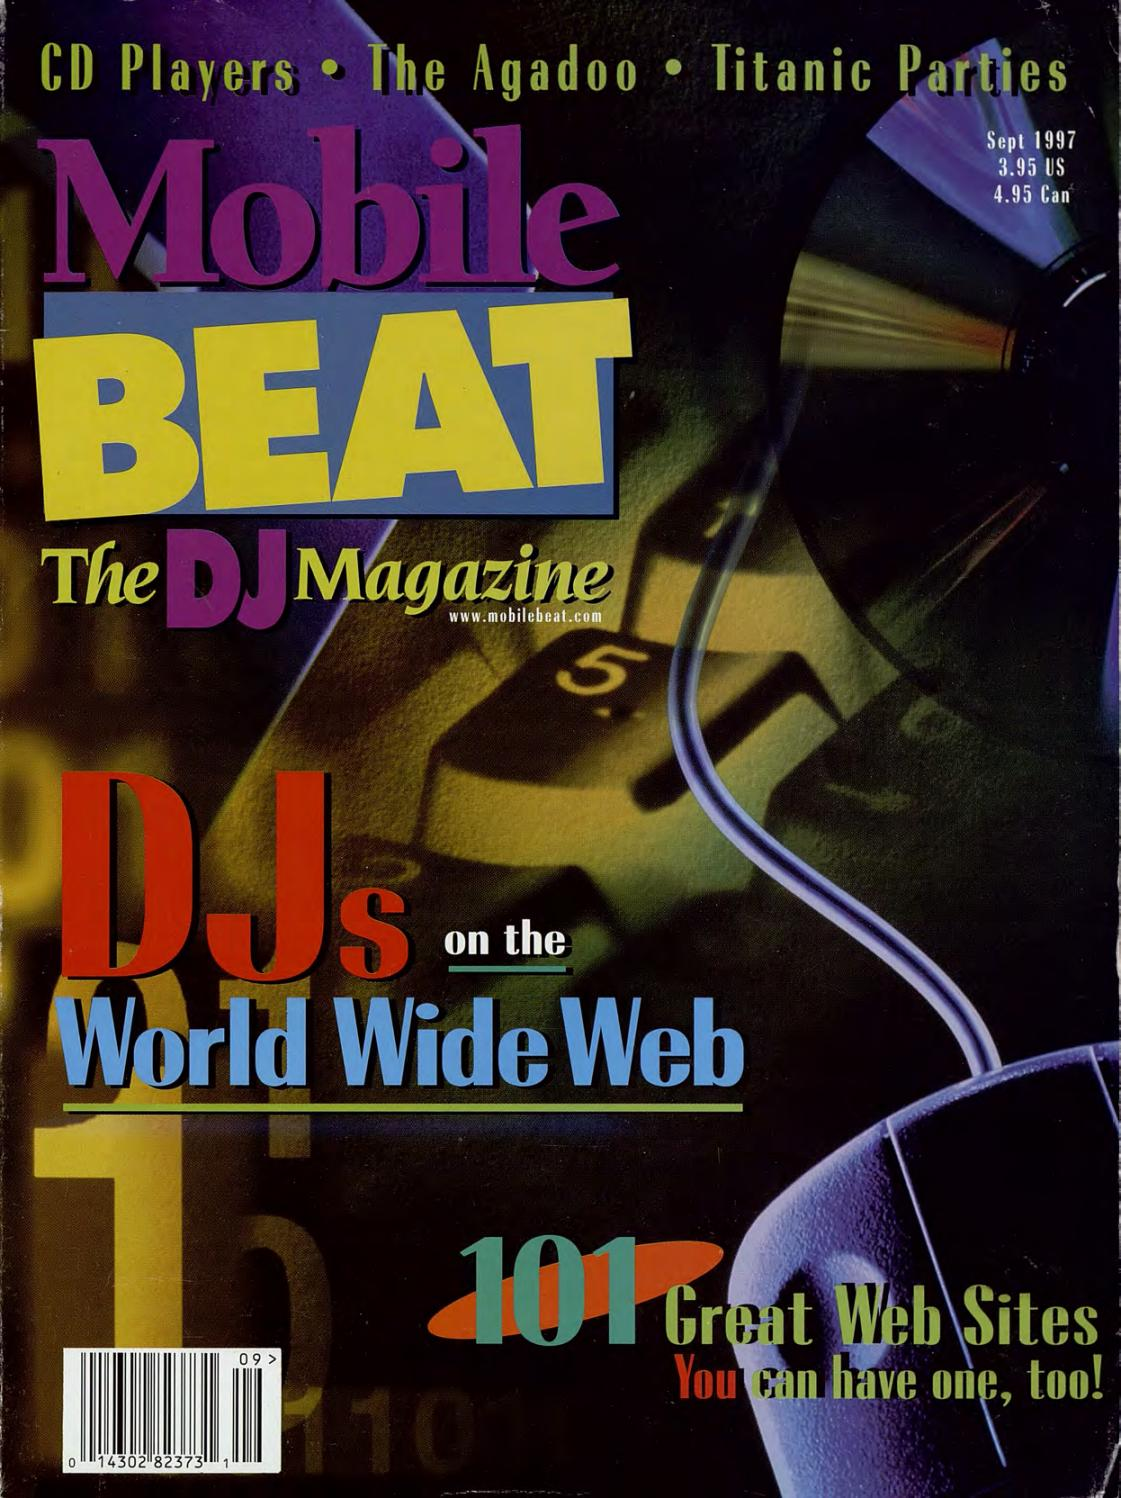 Issue 040 - September 1997 - DJs on the World Wide Web by